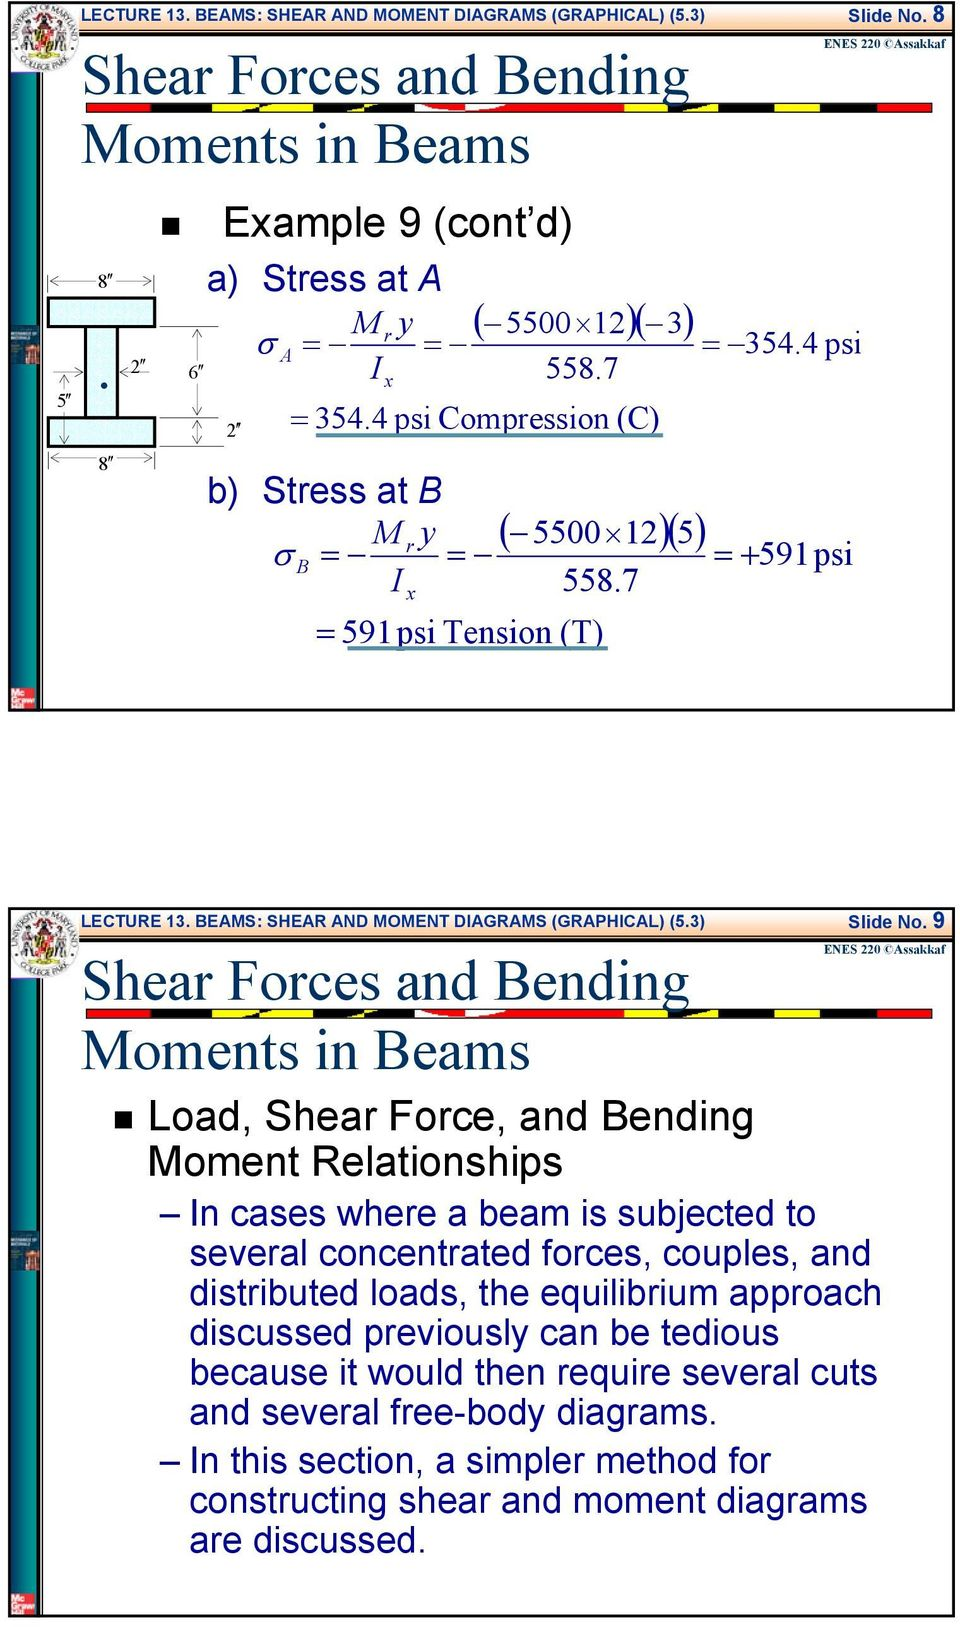 Beams Shear And Moment Diagrams Graphical Pdf Freebody Be Of Body Segments Involved In This Movement Bes Sher Nd Oent Digrs Grphicl 53 Slide No